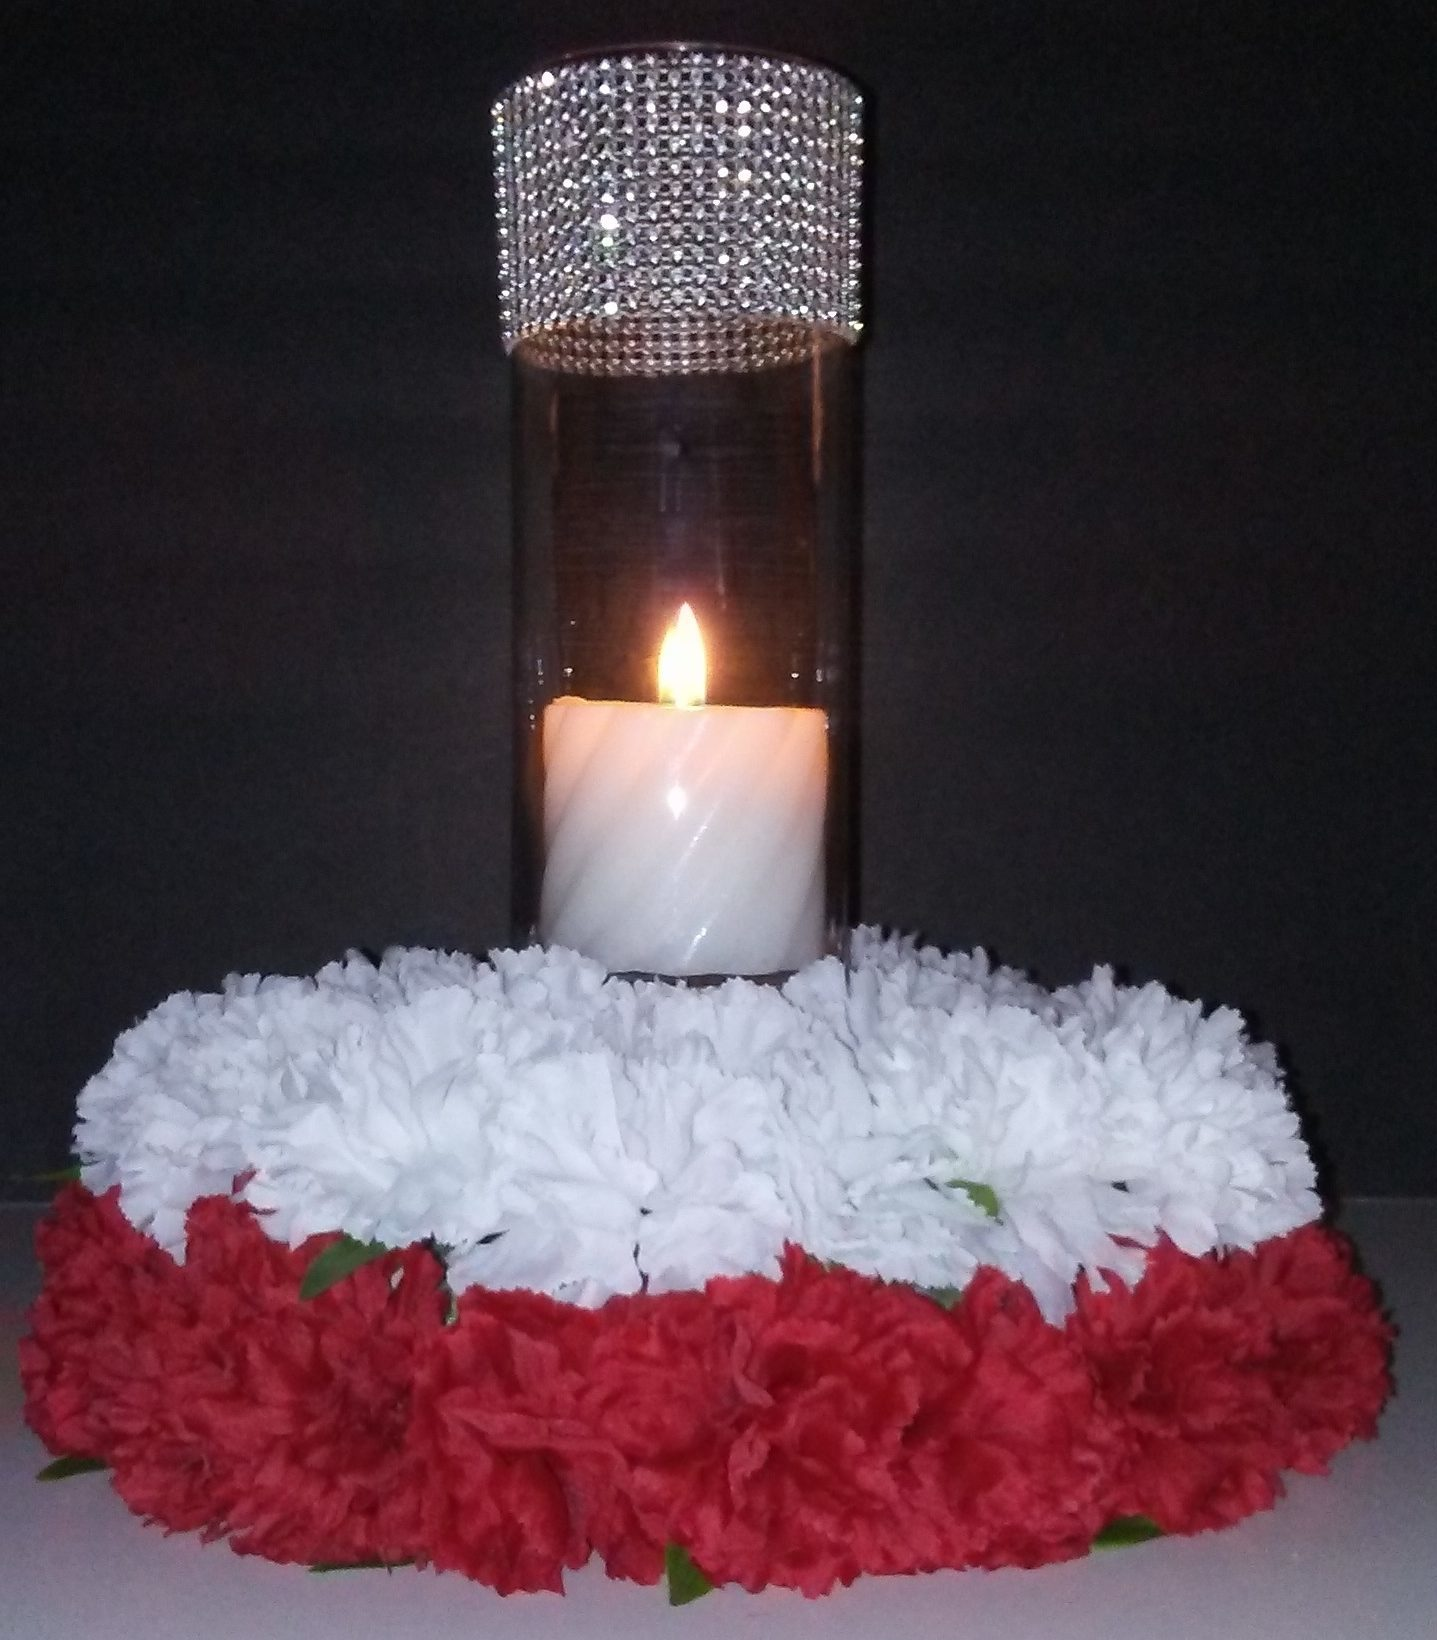 Diy wedding centerpieces candles image detail for